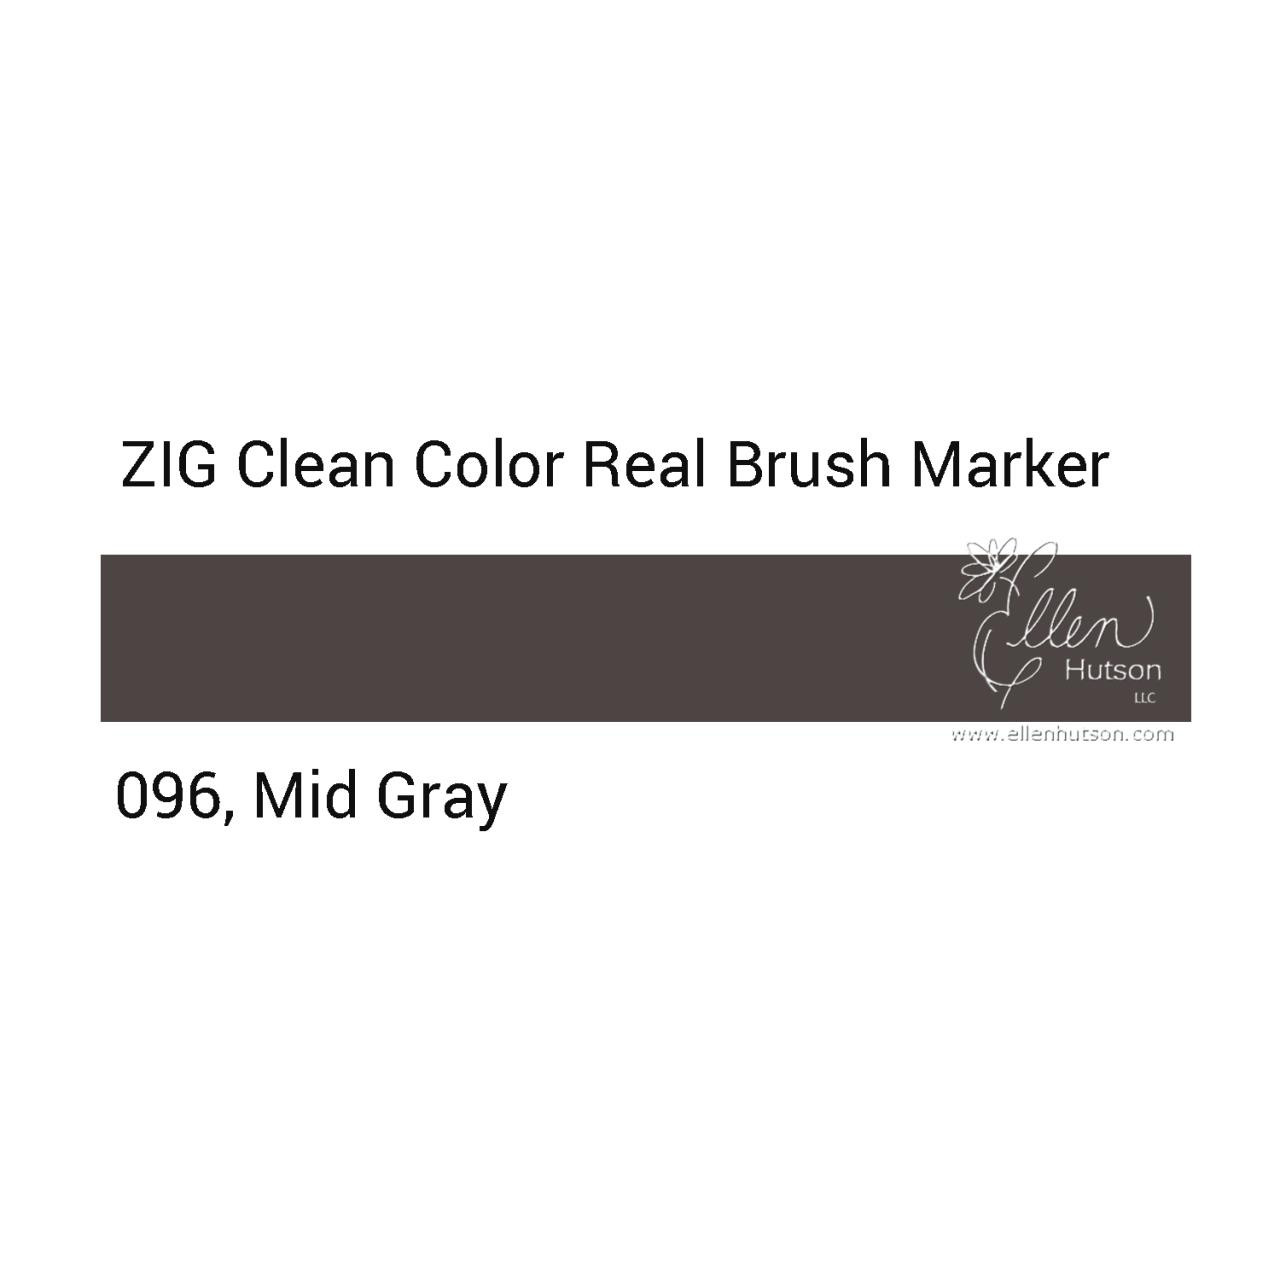 096 - Mid Gray, ZIG Clean Color Real Brush Marker -